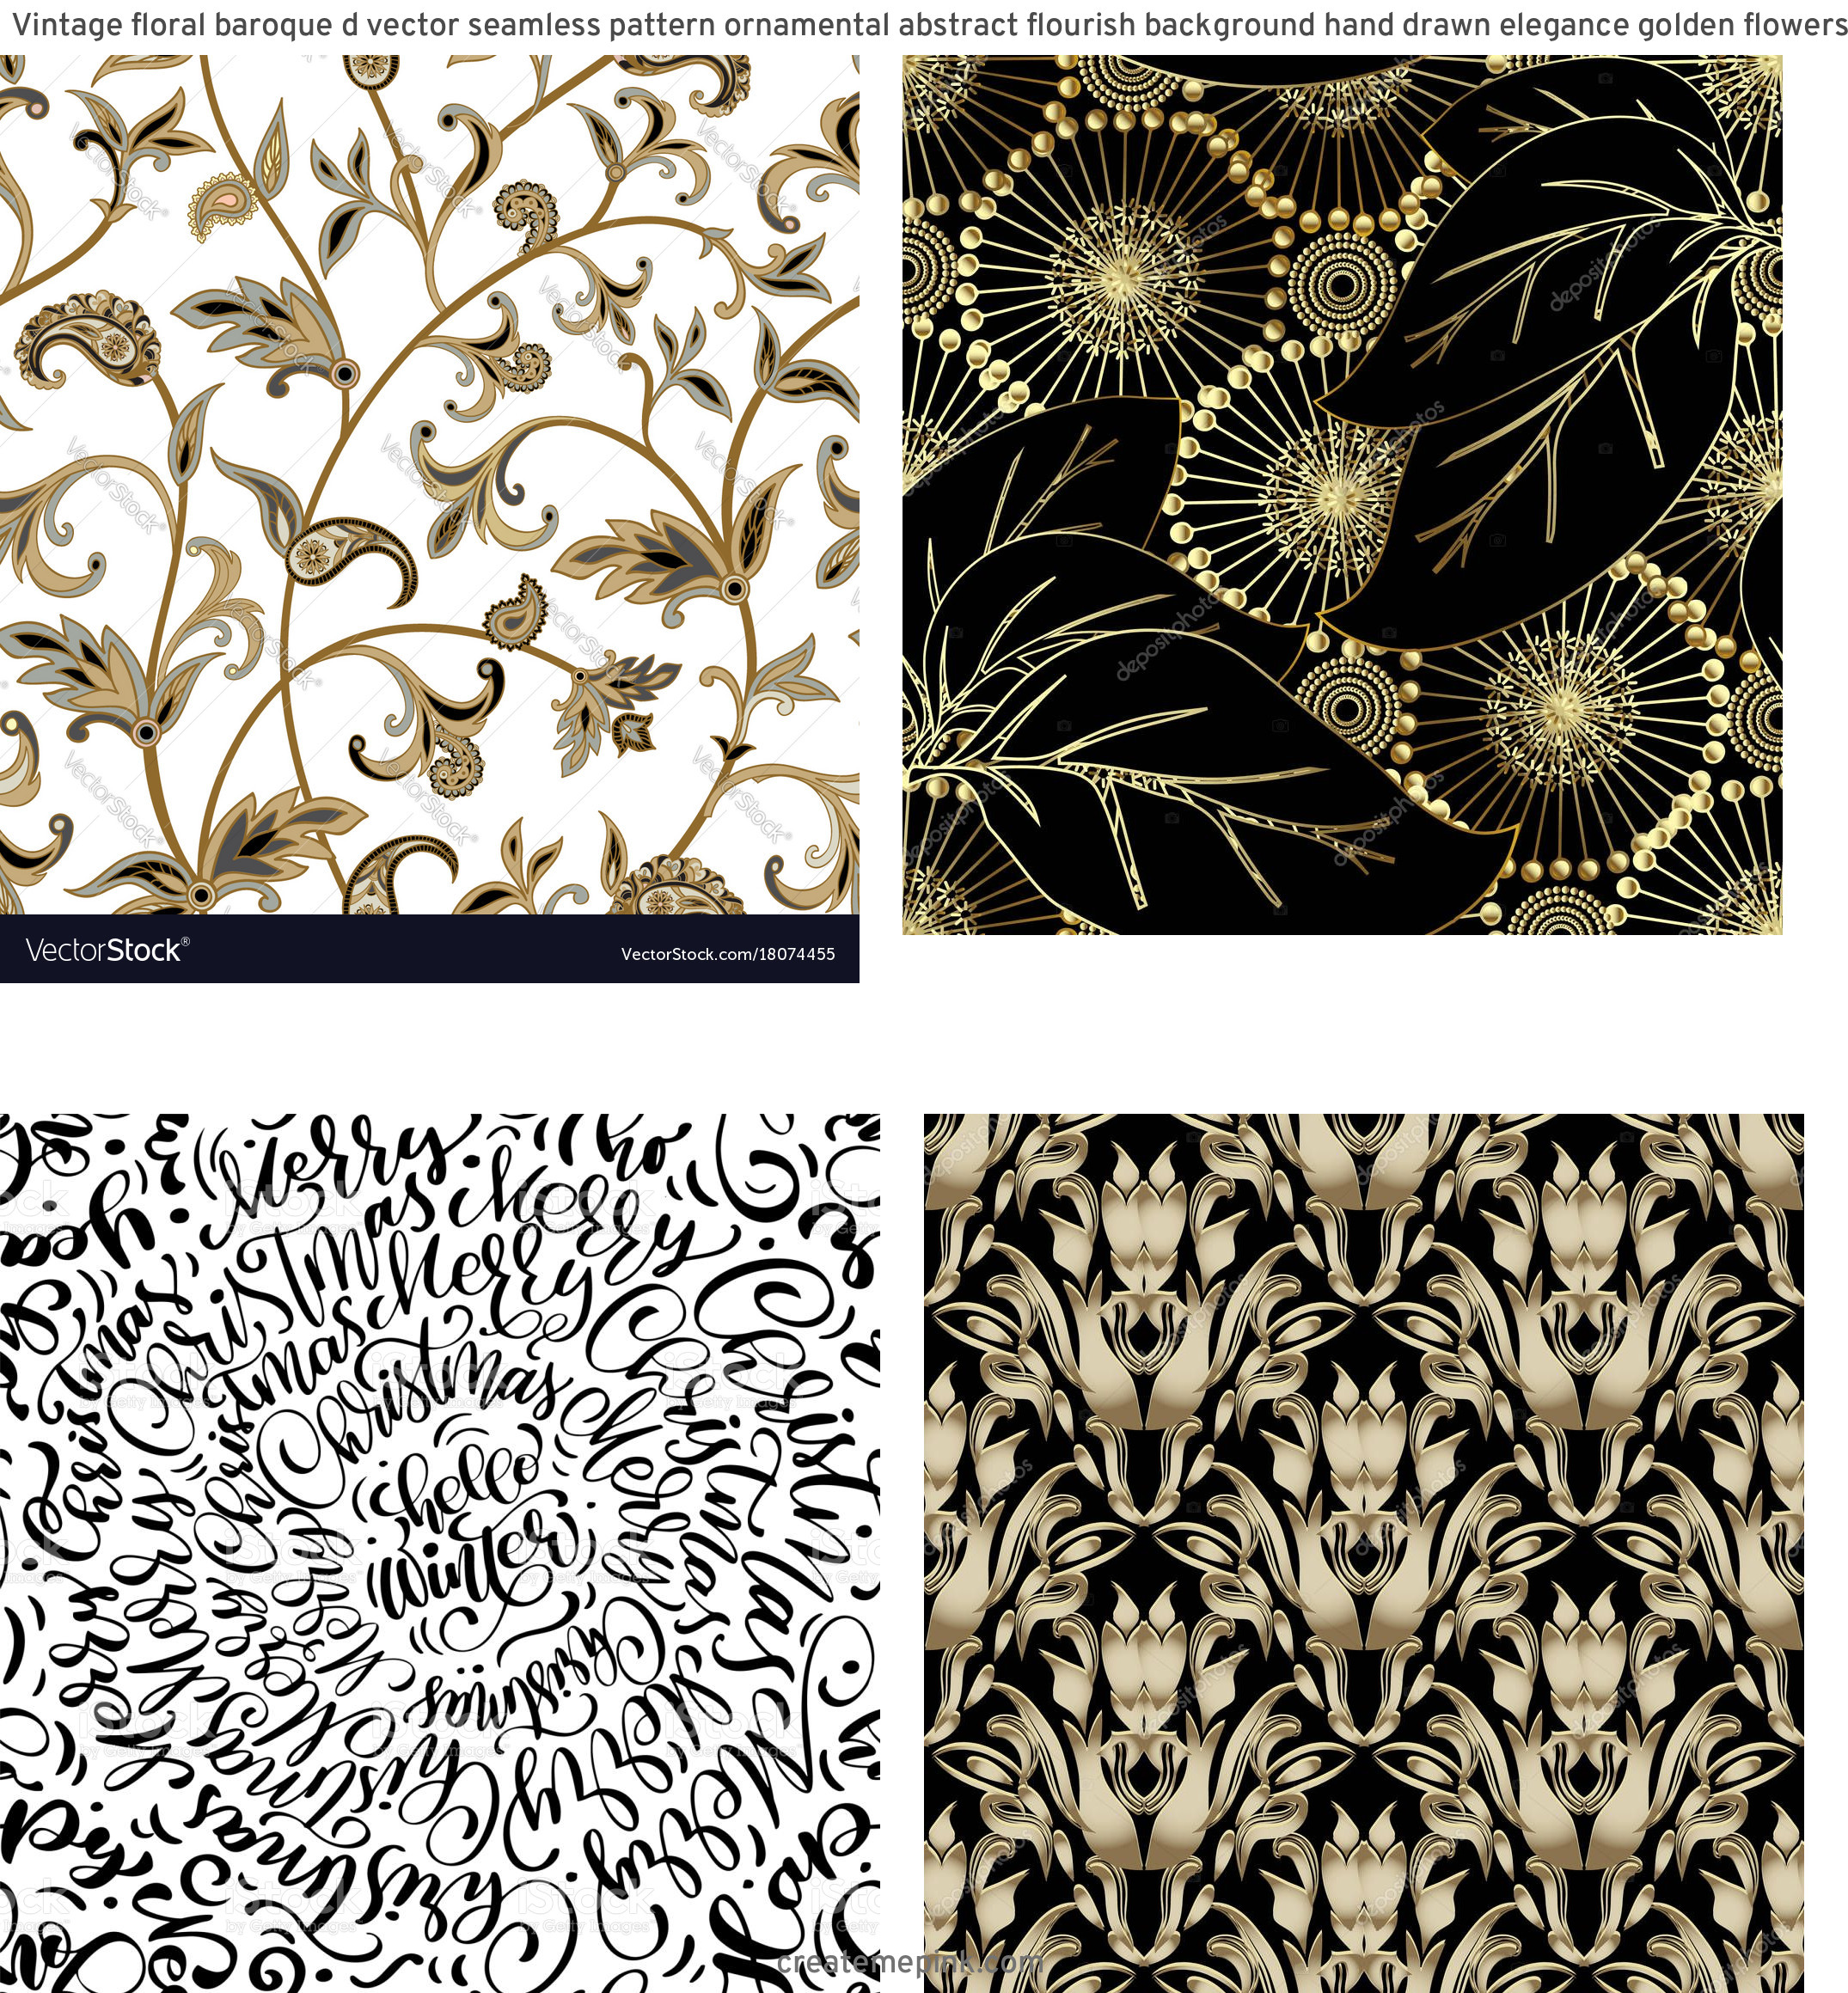 Flourish Vector Pattern: Vintage Floral Baroque D Vector Seamless Pattern Ornamental Abstract Flourish Background Hand Drawn Elegance Golden Flowers Leaves Line Art Tracery Damask Ornaments Ornate Design